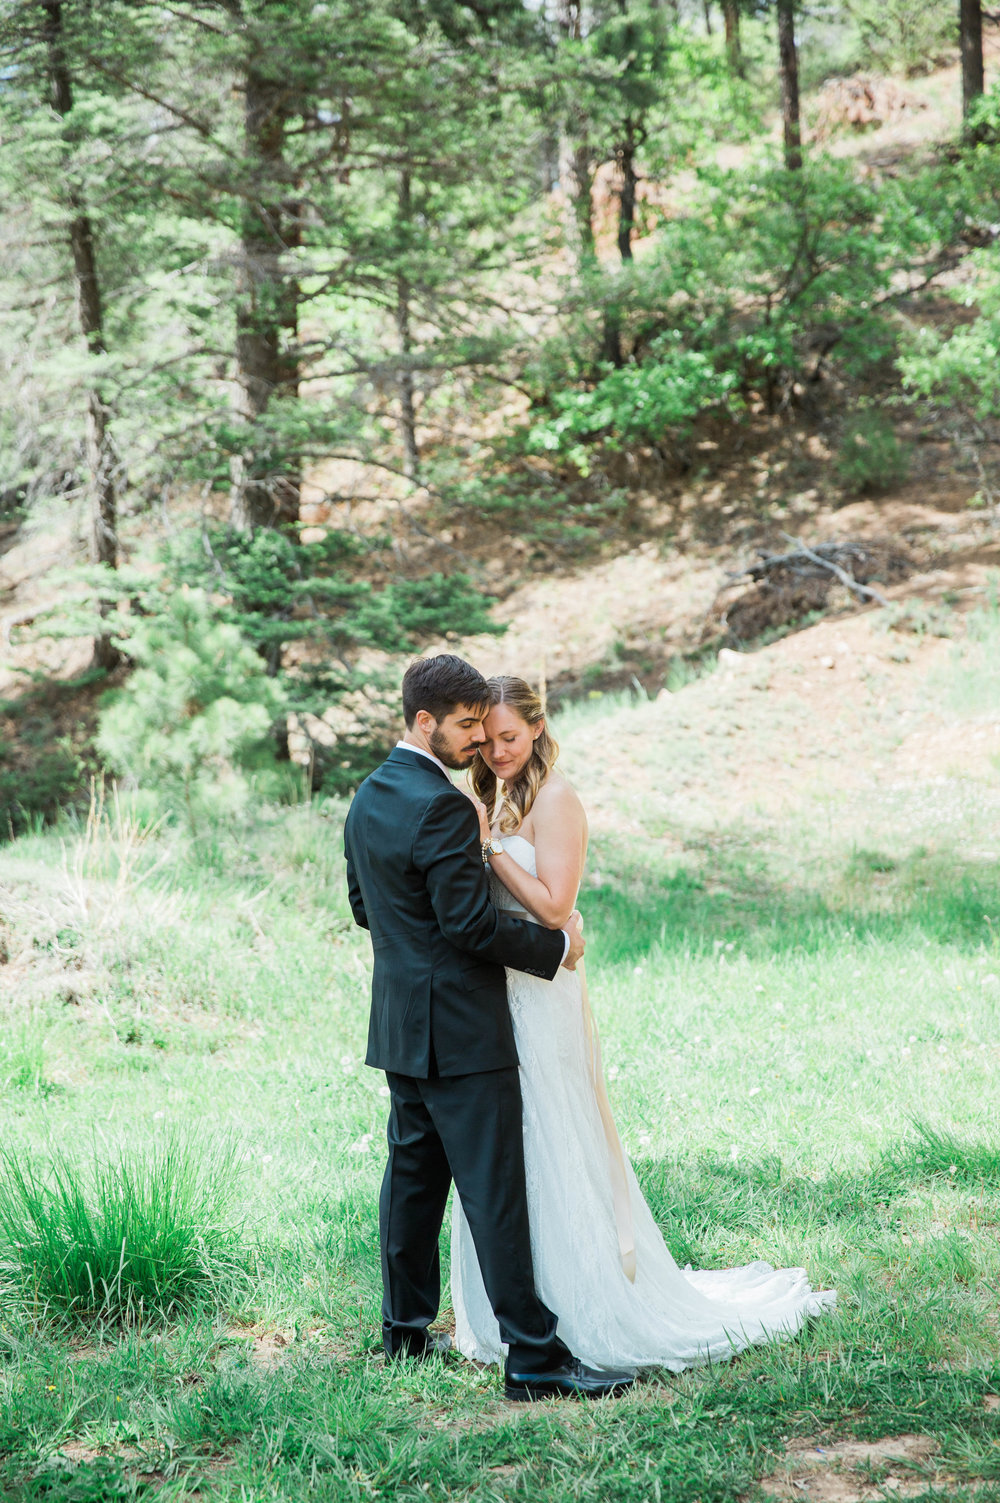 colorado new mexico rocky mountain aspen vail colorado springs denver elopement wedding engagement photography photographer